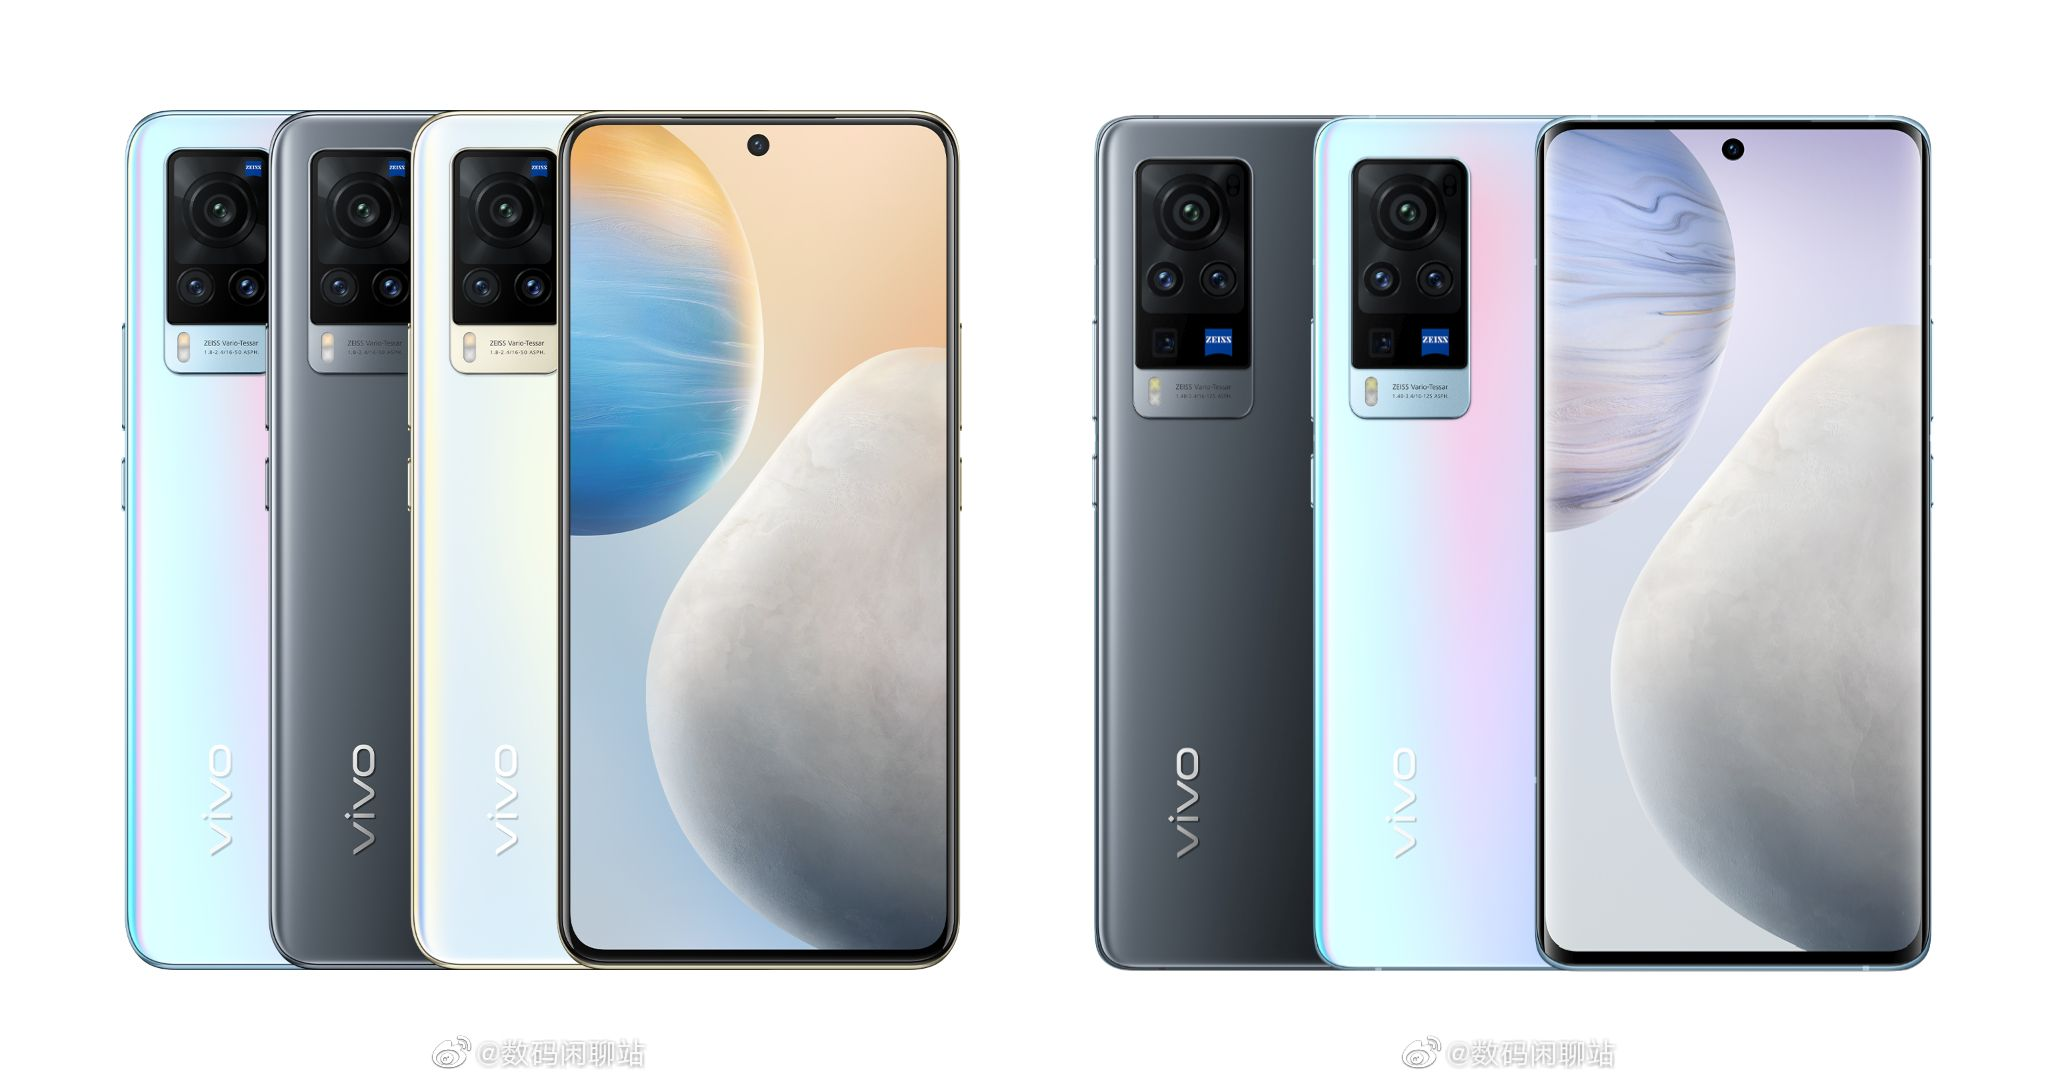 Vivo X70 and X70 Pro Expected to Launch With Different Chipsets in Different Markets